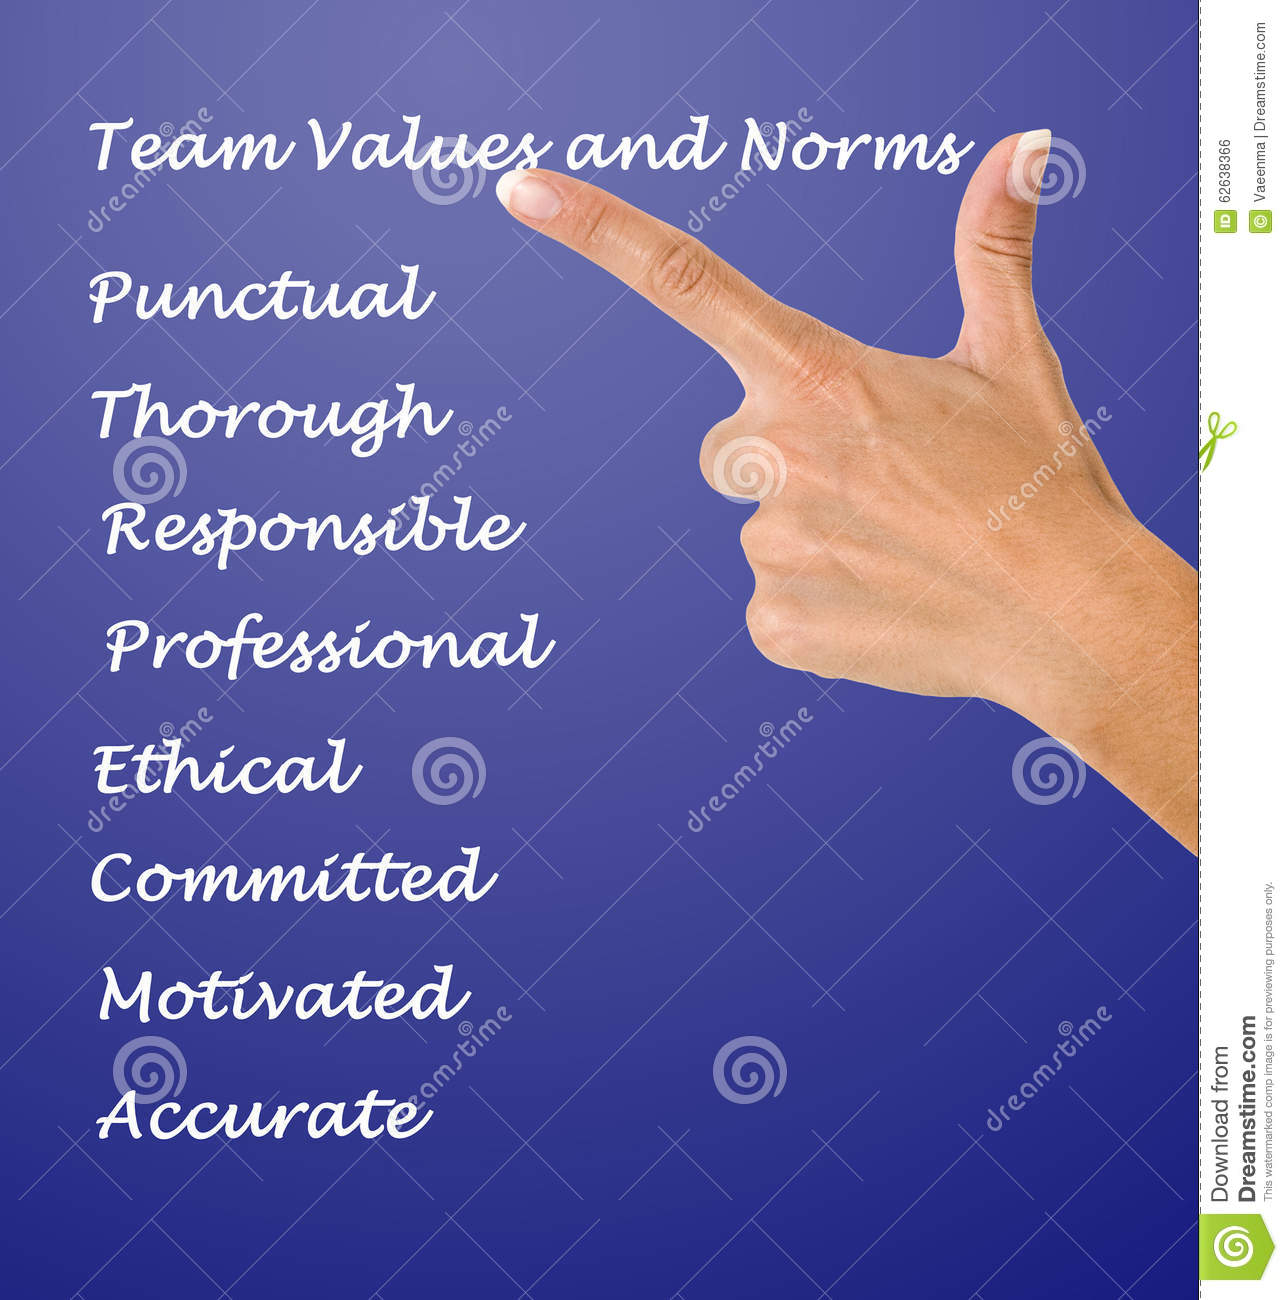 Team Values And Norms Stock Photo - Image: 62638366 People Working ... Octopus Blunt